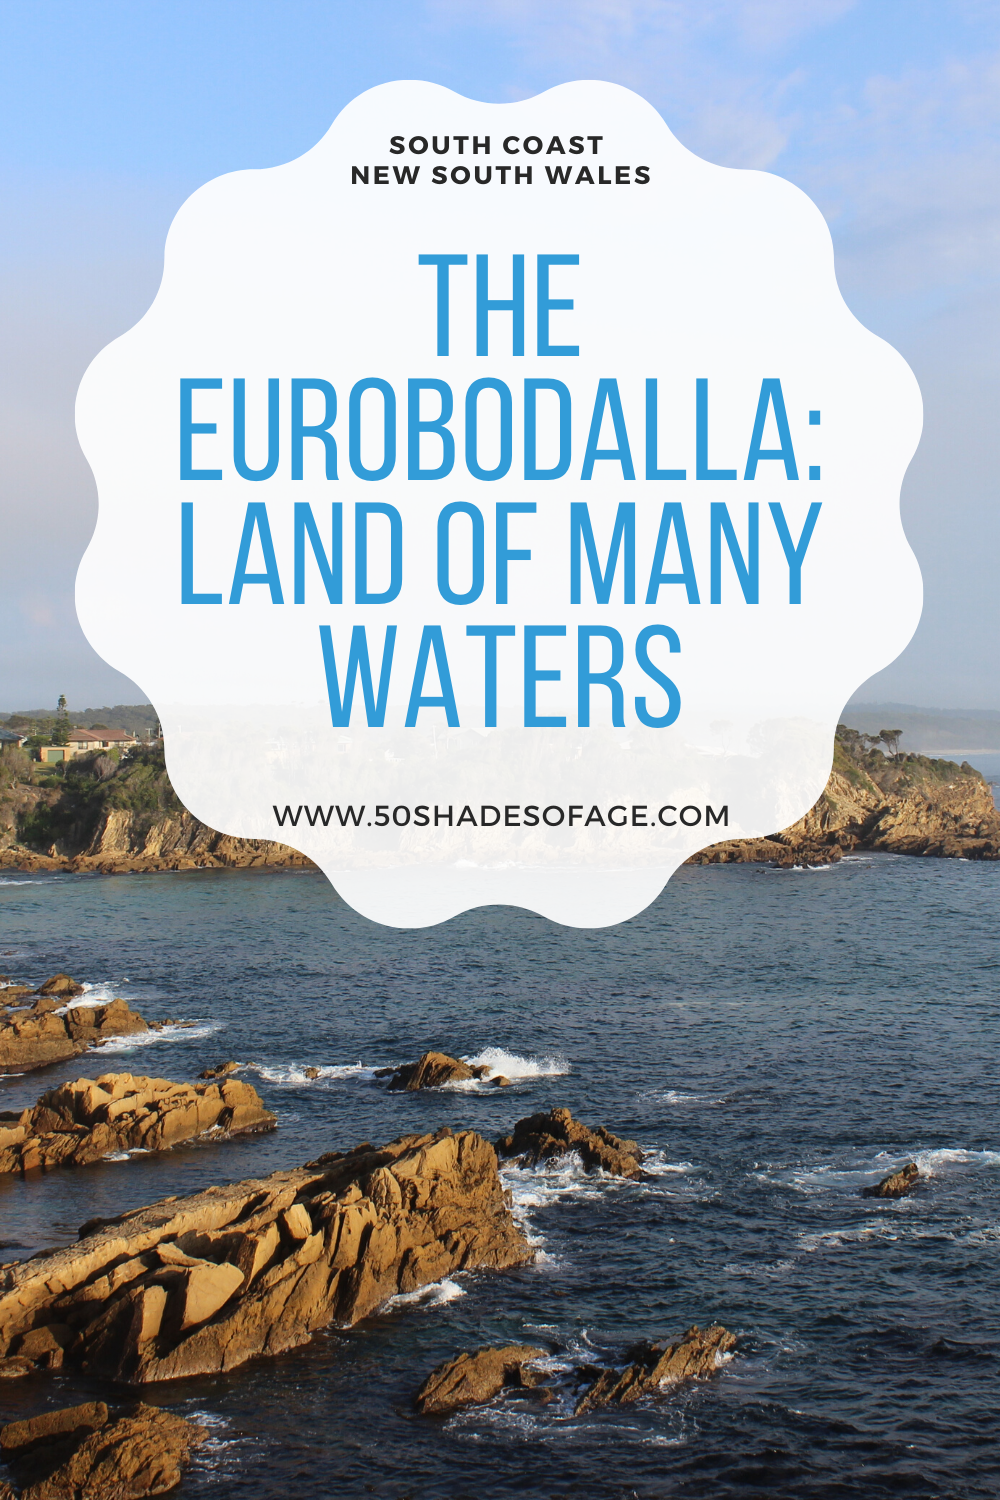 The Eurobodalla: Land of Many Waters